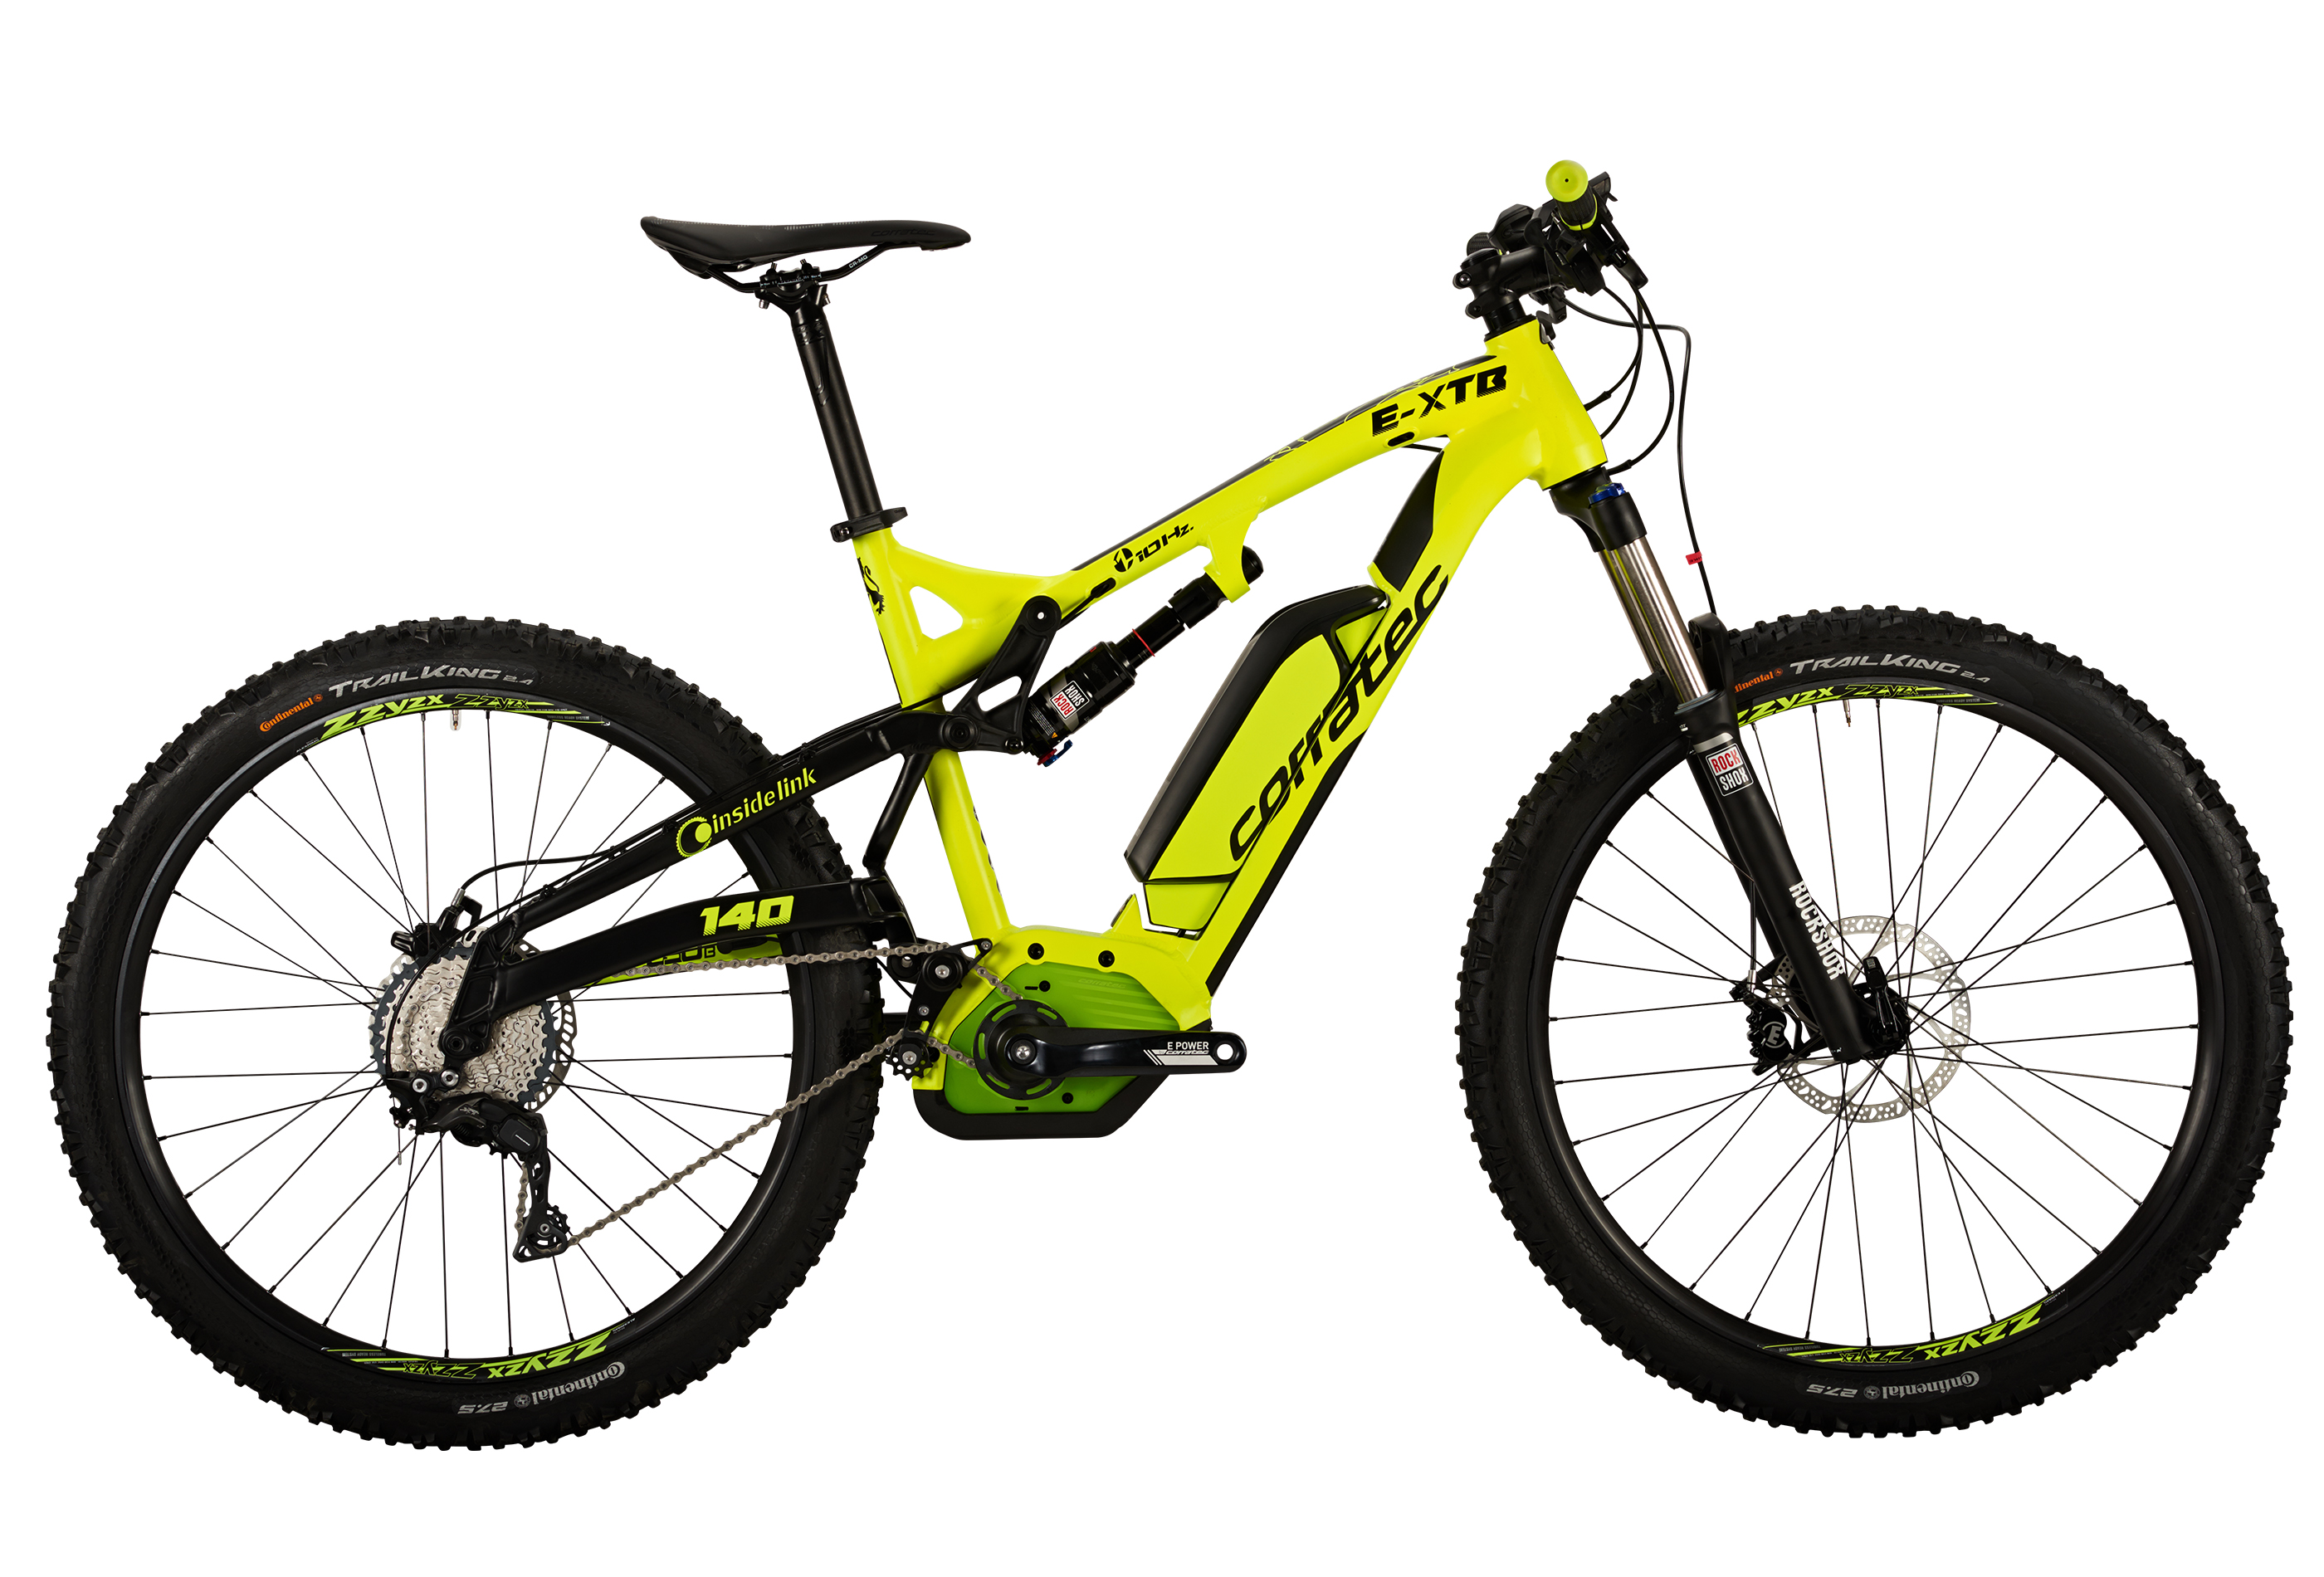 CORRATEC BK22267 E-XTB 650B - MOUNTAIN FULL SUSPENSION